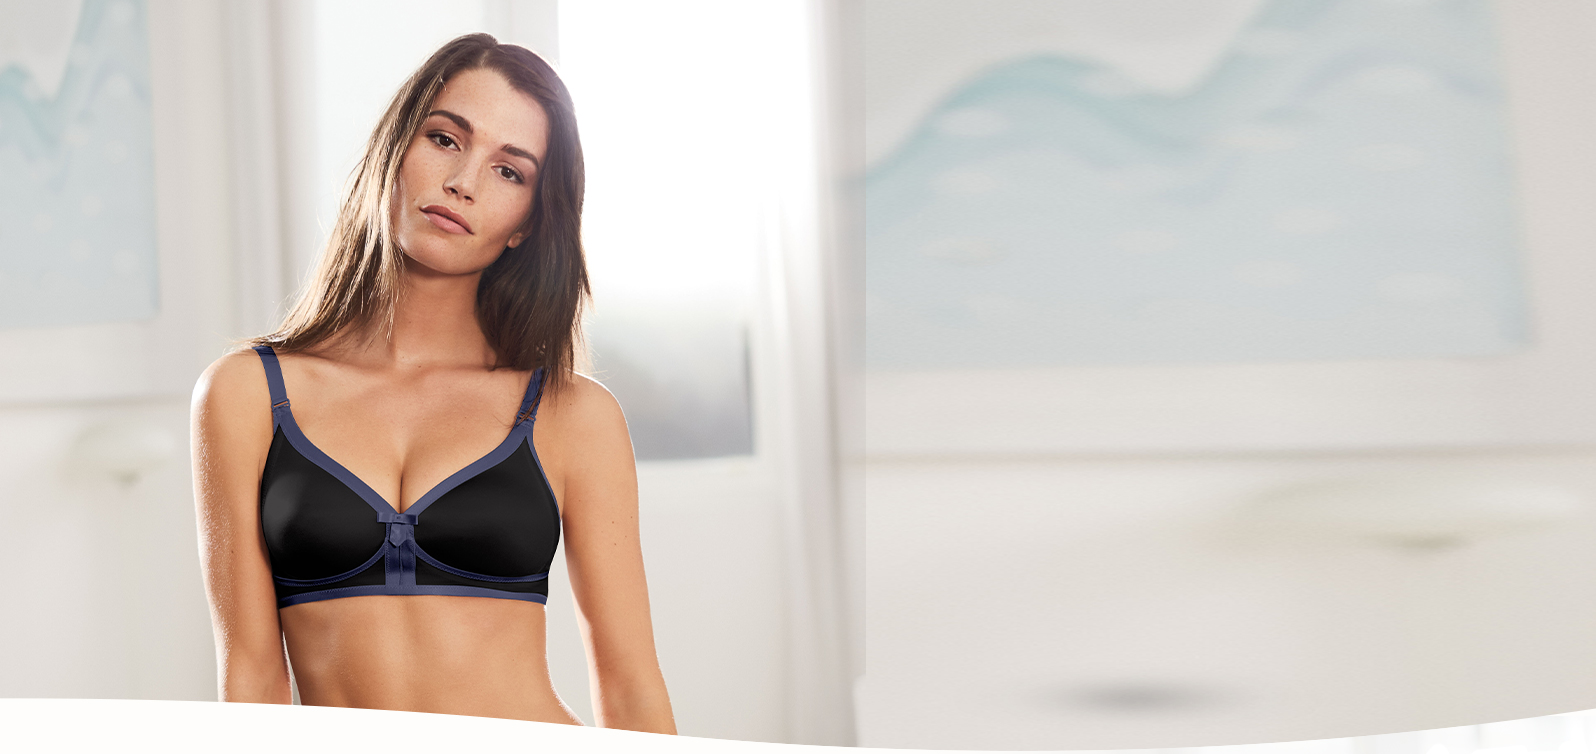 Soutien-gorge Ideal Beauty Playtex